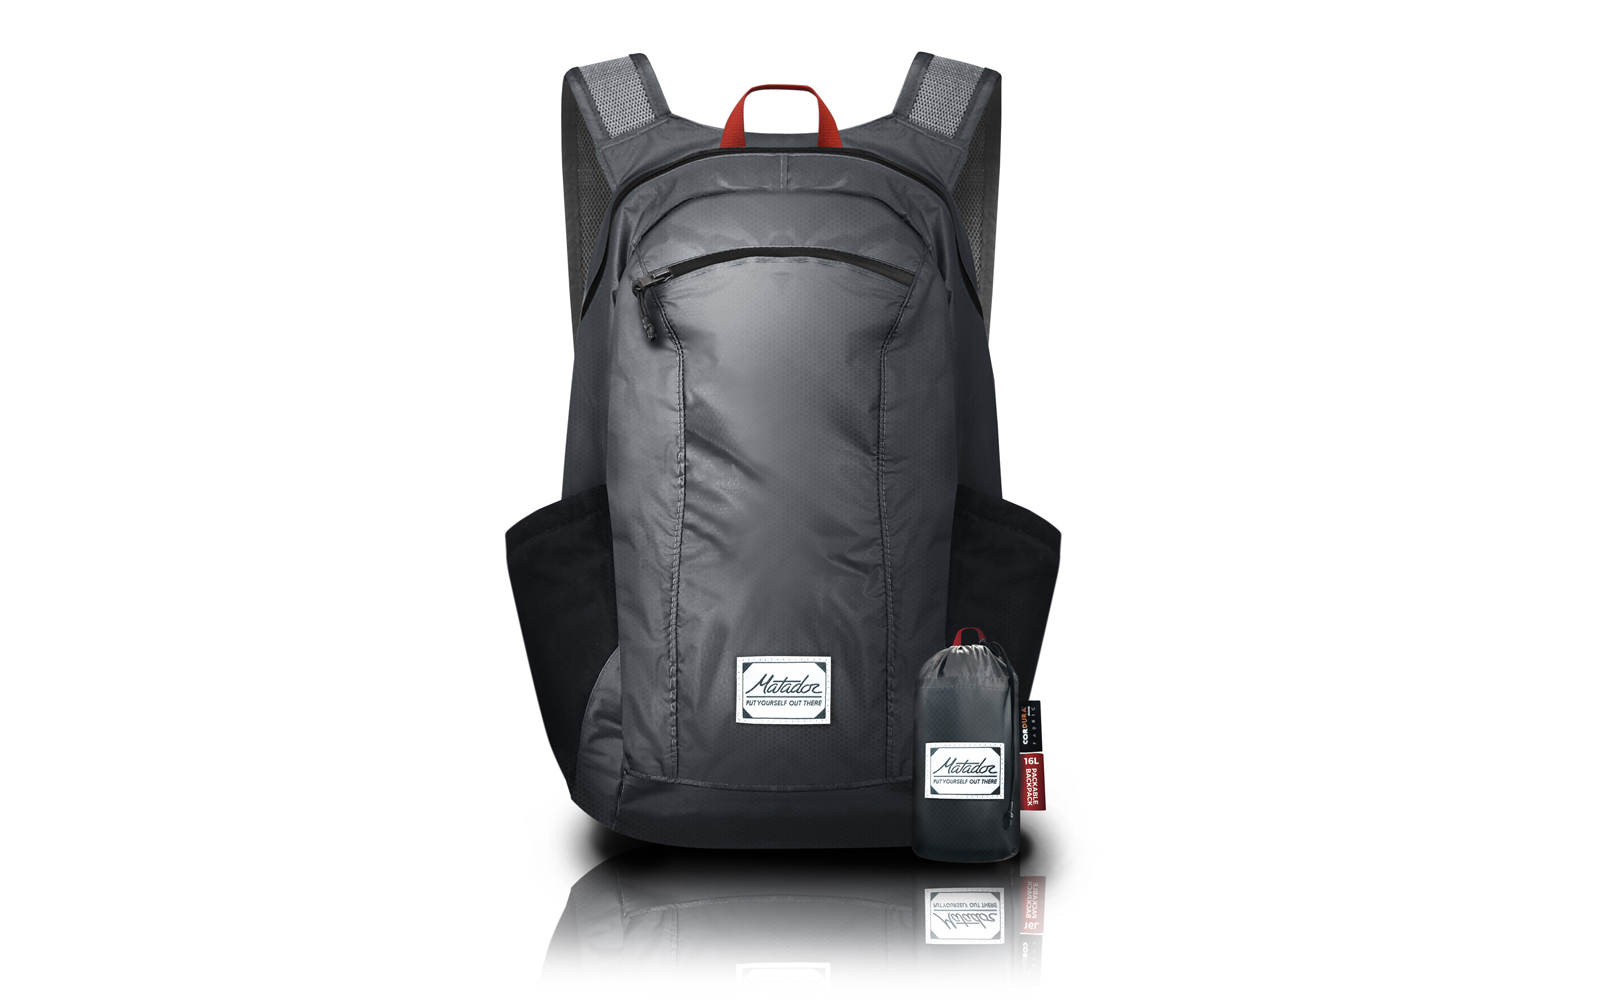 Matador DayLite16 Packable Backpack